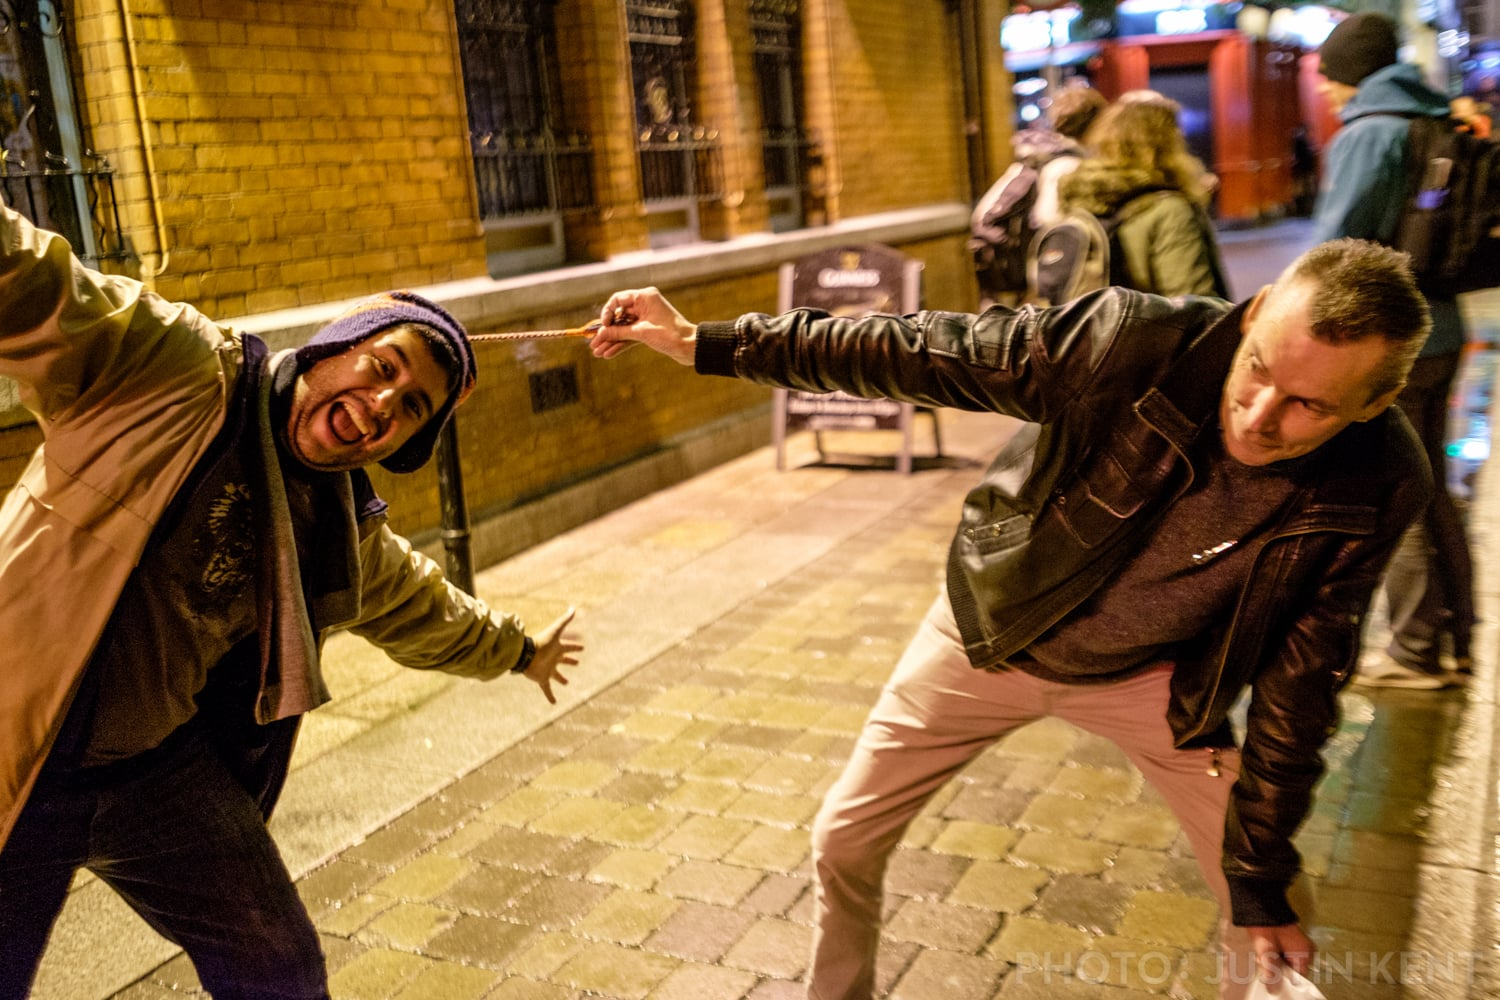 Martin drags Jorge out into Dublin